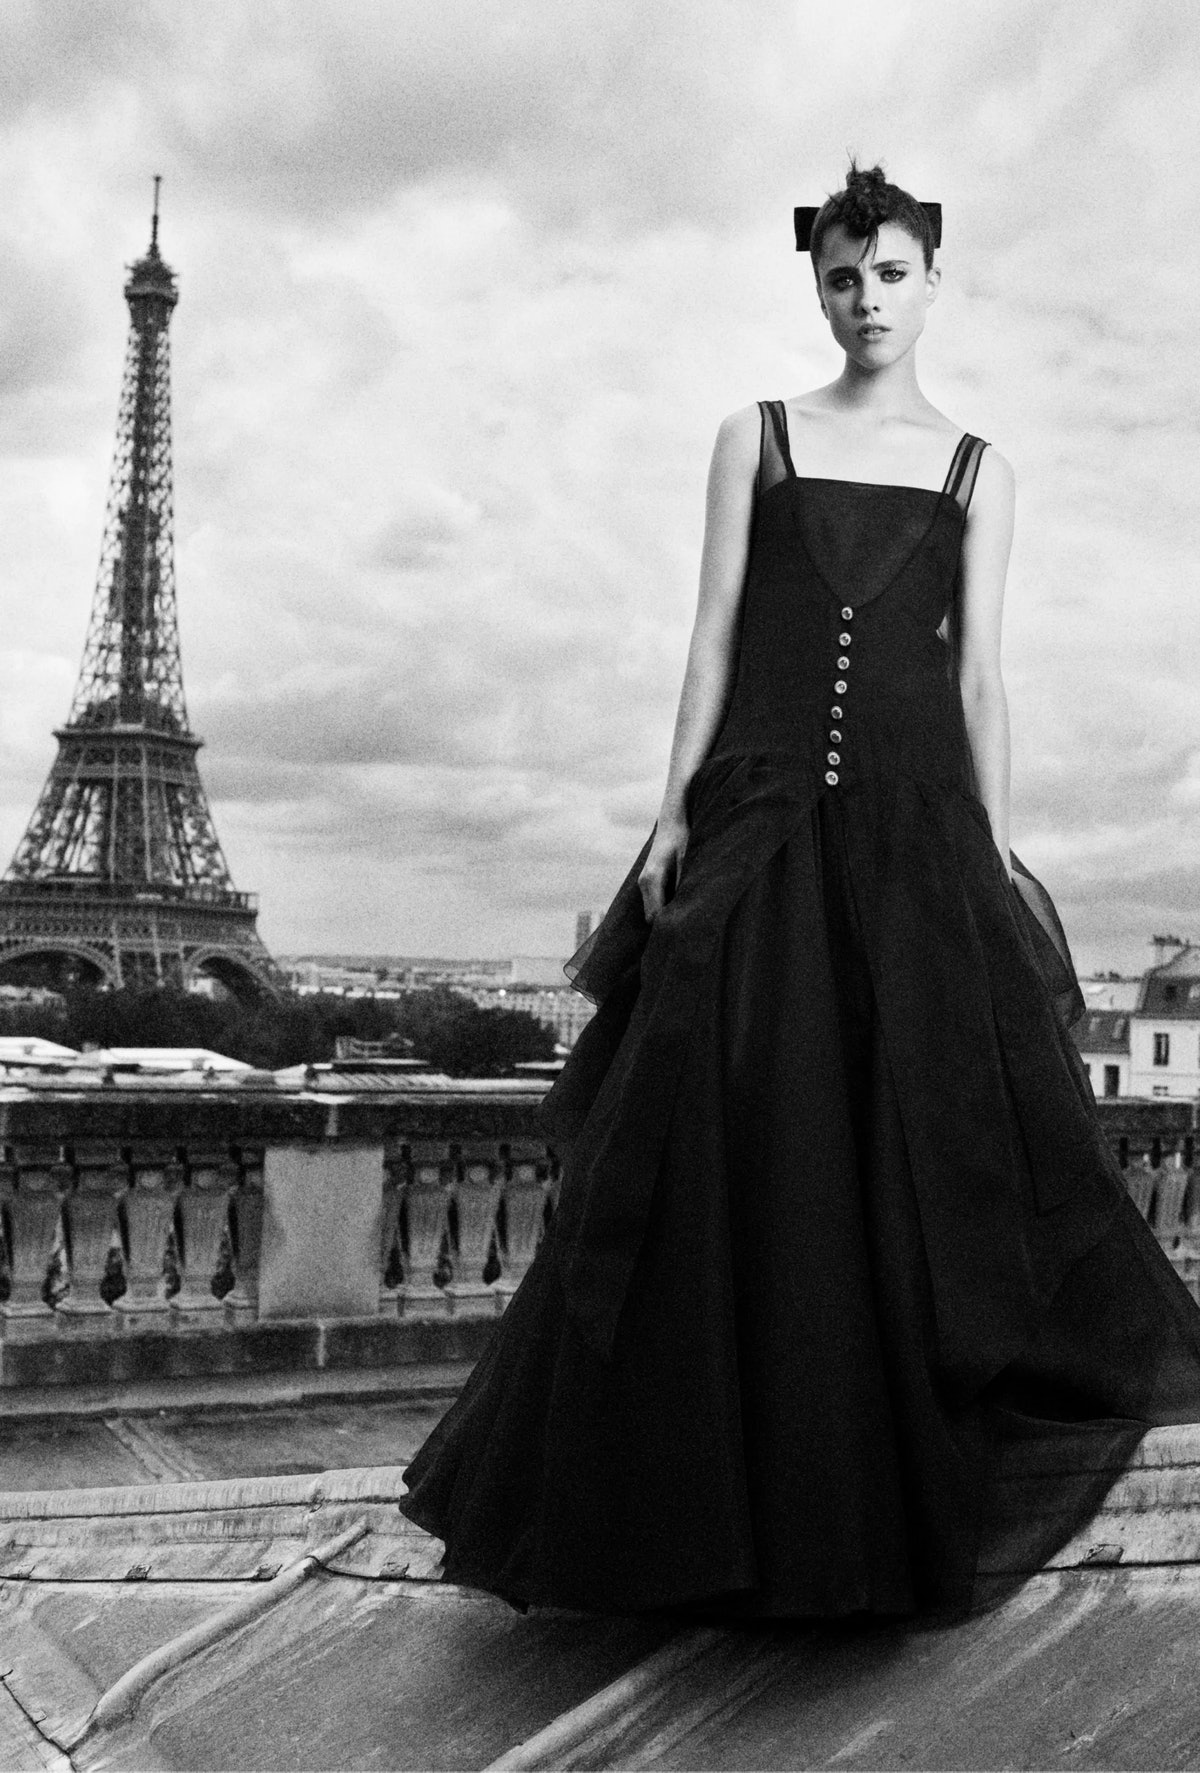 Margaret Qualley, wearing Chanel couture, standing in front of the Eiffel Tower